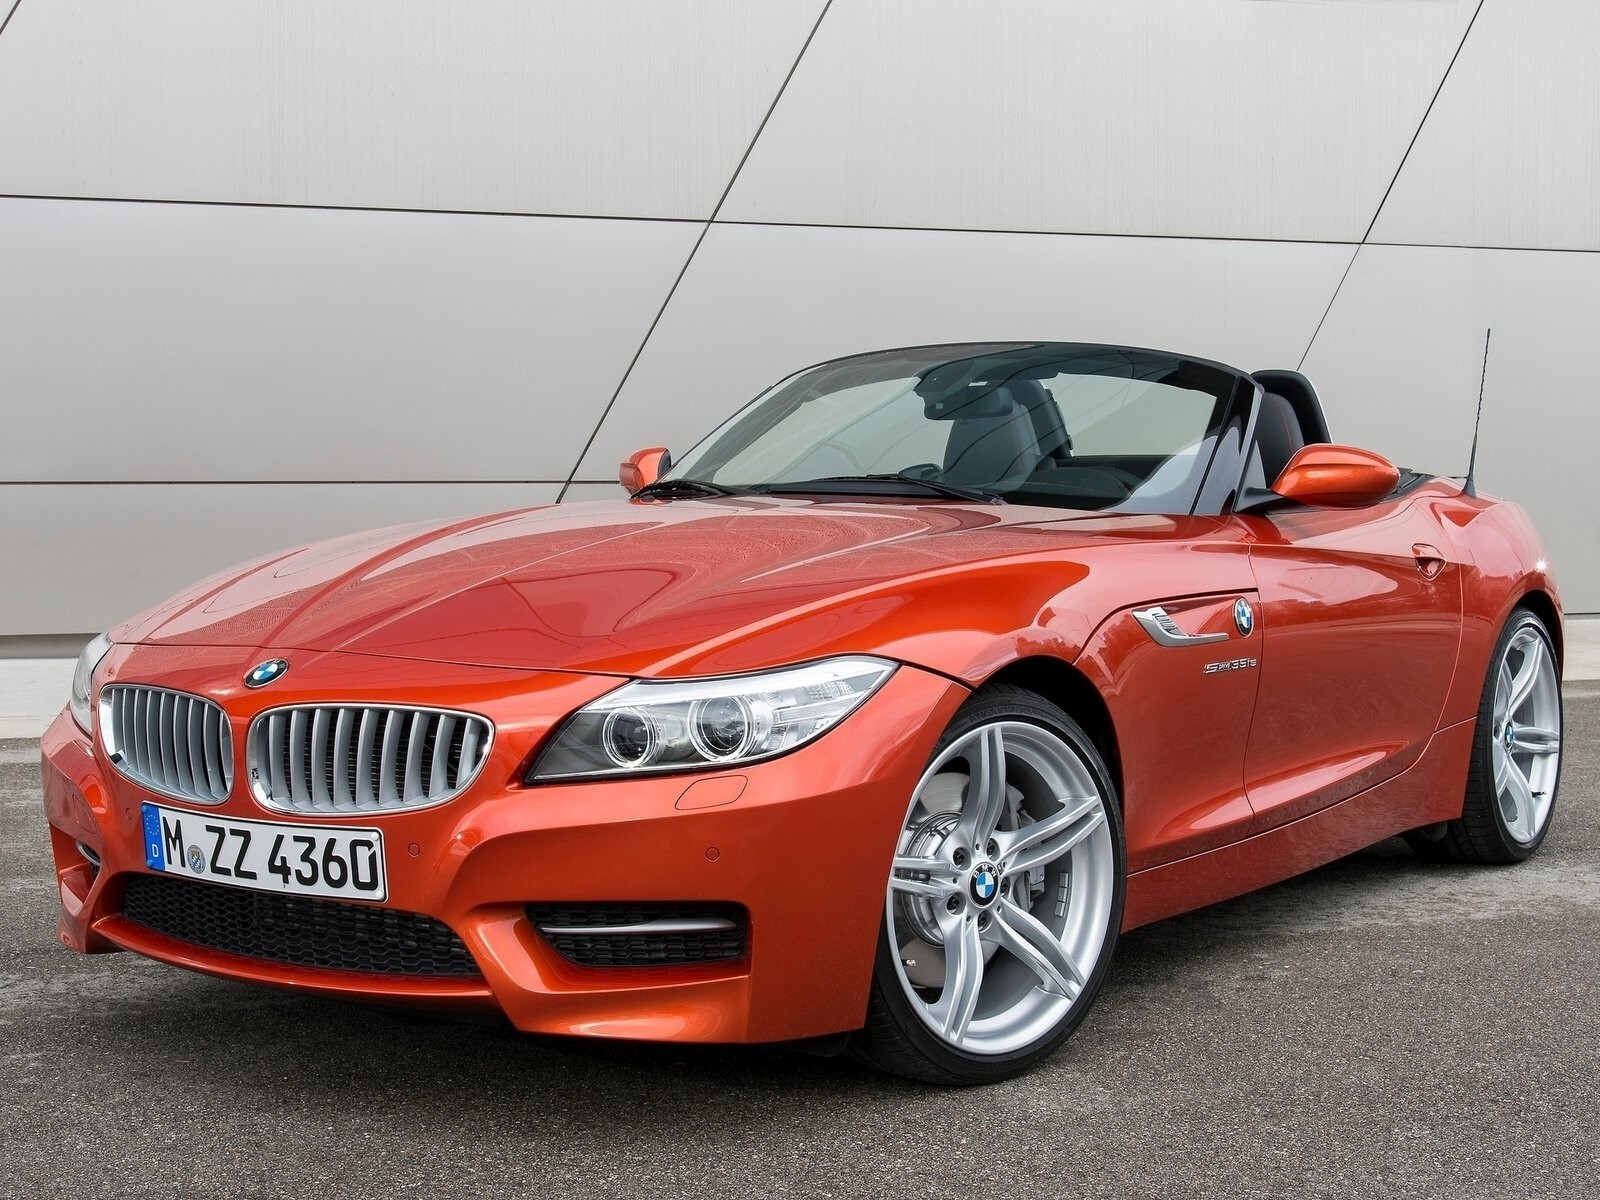 New 2 Seater Convertible Bmw Z4 Roadster 2014 Car Hd Wallpapers